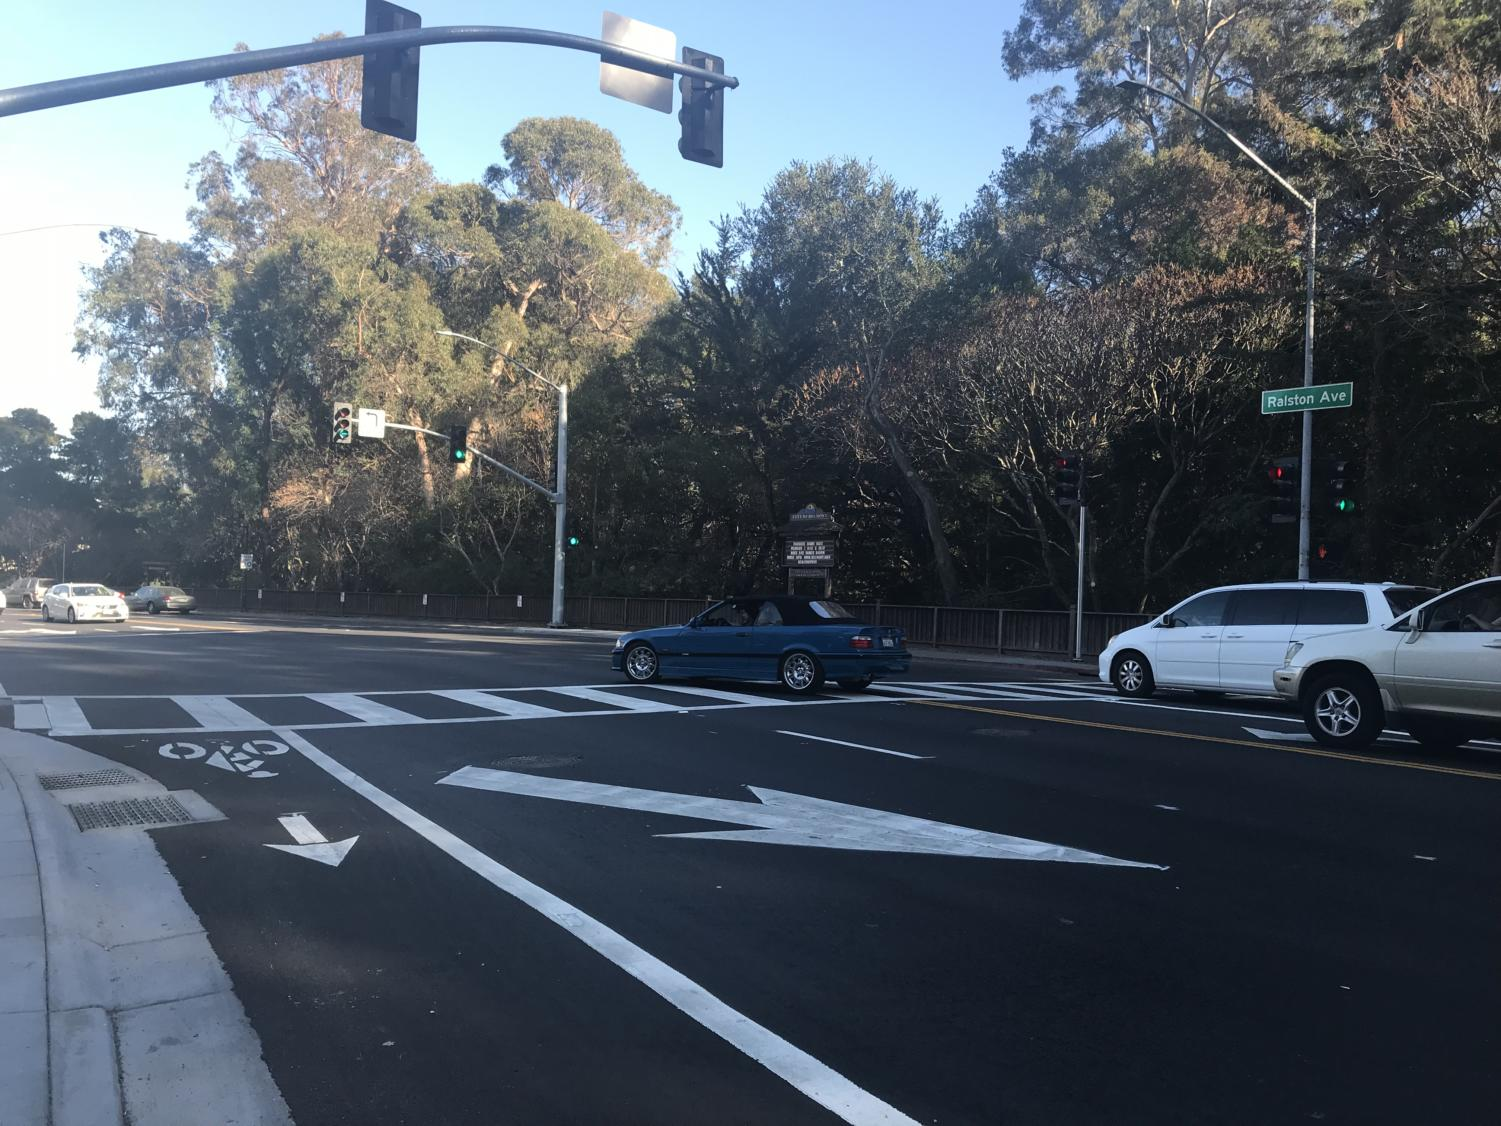 The new traffic light at the intersection of Ralston and South creates mixed feelings. Some think it will help traffic but others feel differently.